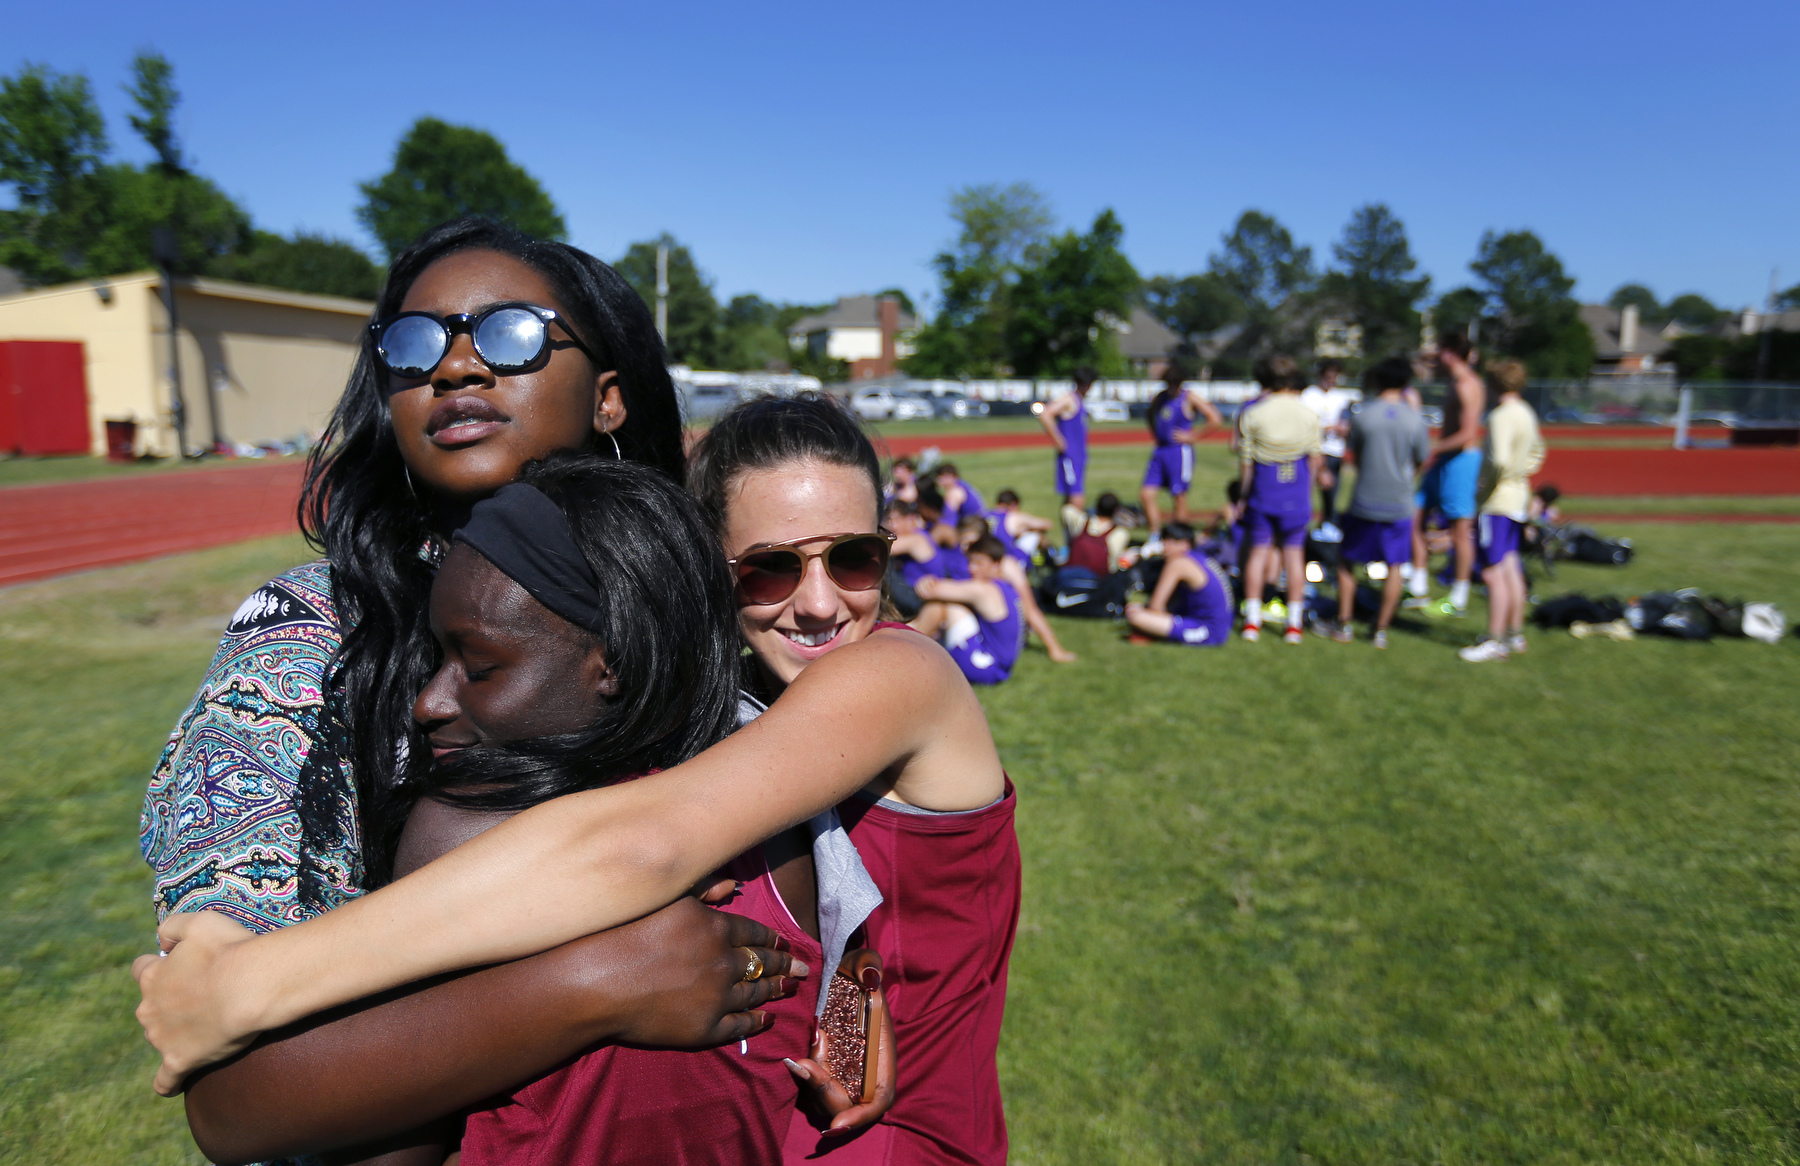 April 27, 2016 - St. George's senior Erica Stevenson (back) and sophomore Whitney Ziegenhorn (right) embrace sophomore Christiana Nyarko during a track meet after school at Evangelical Christian School. {quote}In middle school, I felt like it was a lot easier. The issues we are dealing with now in high school, in general, we didn't notice back then, like race issues.{quote} Stevenson said. {quote}It just became more apparent. The high school years were harder than the middle school years.{quote} (Mike Brown/The Commercial Appeal)